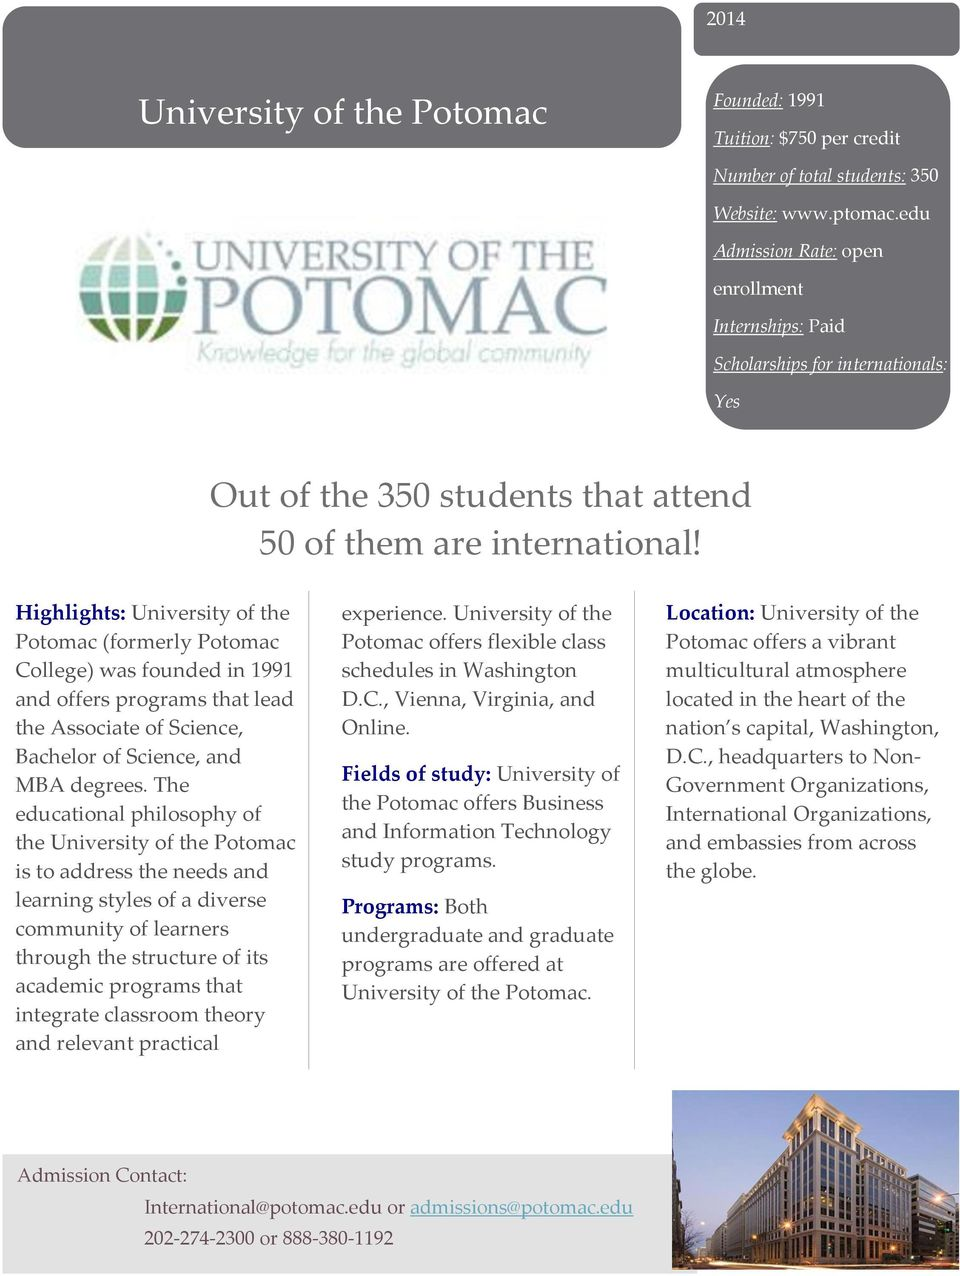 The educational philosophy of the University of the Potomac is to address the needs and learning styles of a diverse community of learners through the structure of its academic programs that